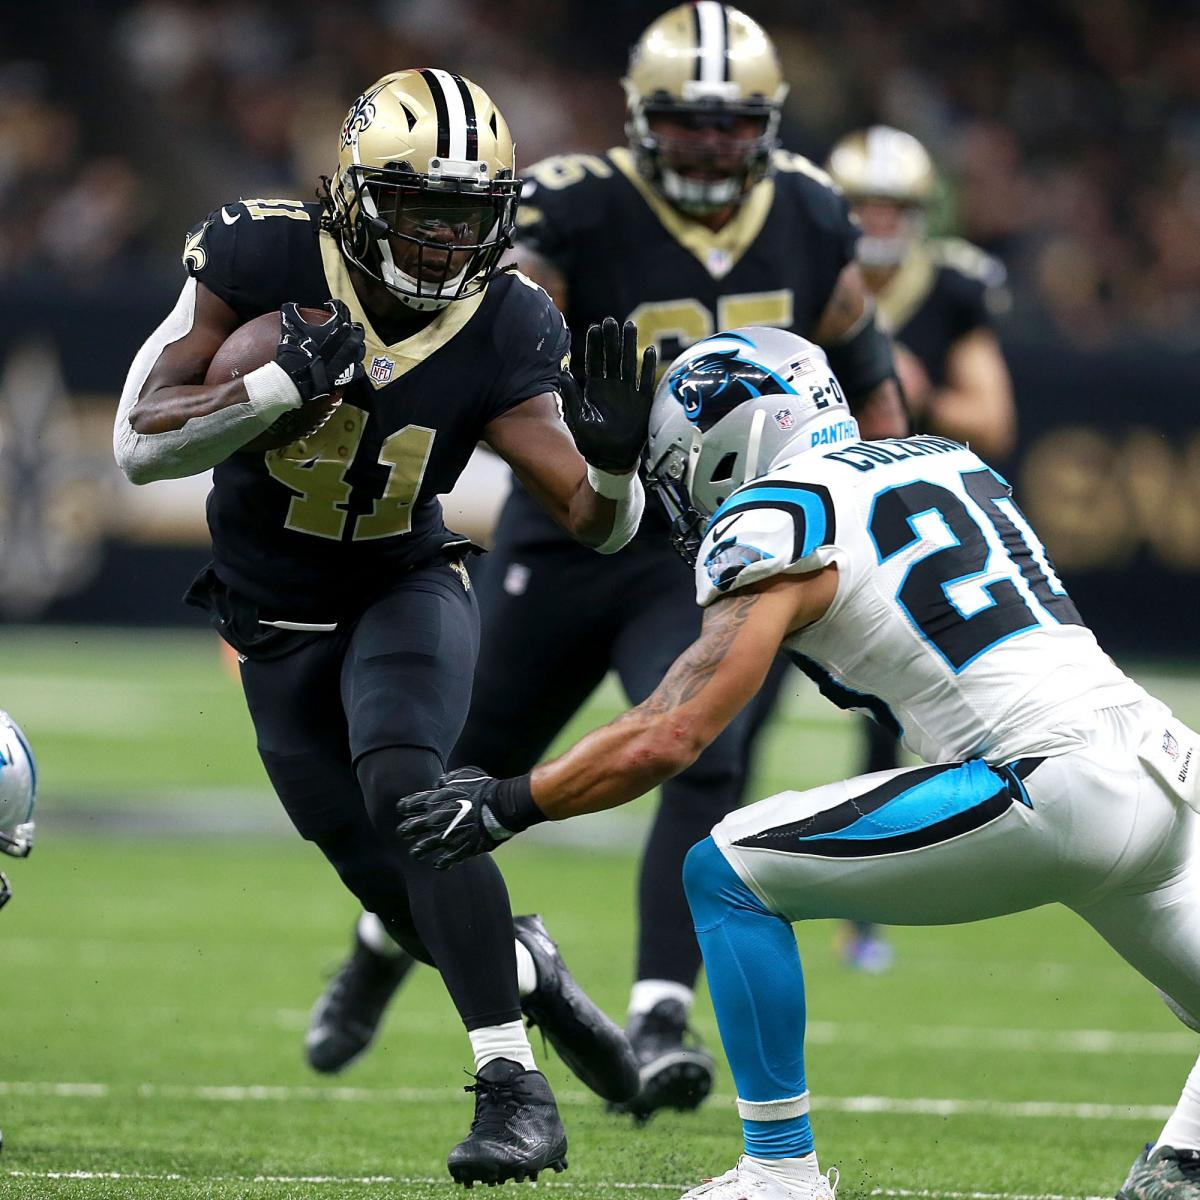 Panthers vs. Saints: Updated Odds, TV Info and Prediction for Wild-Card Game